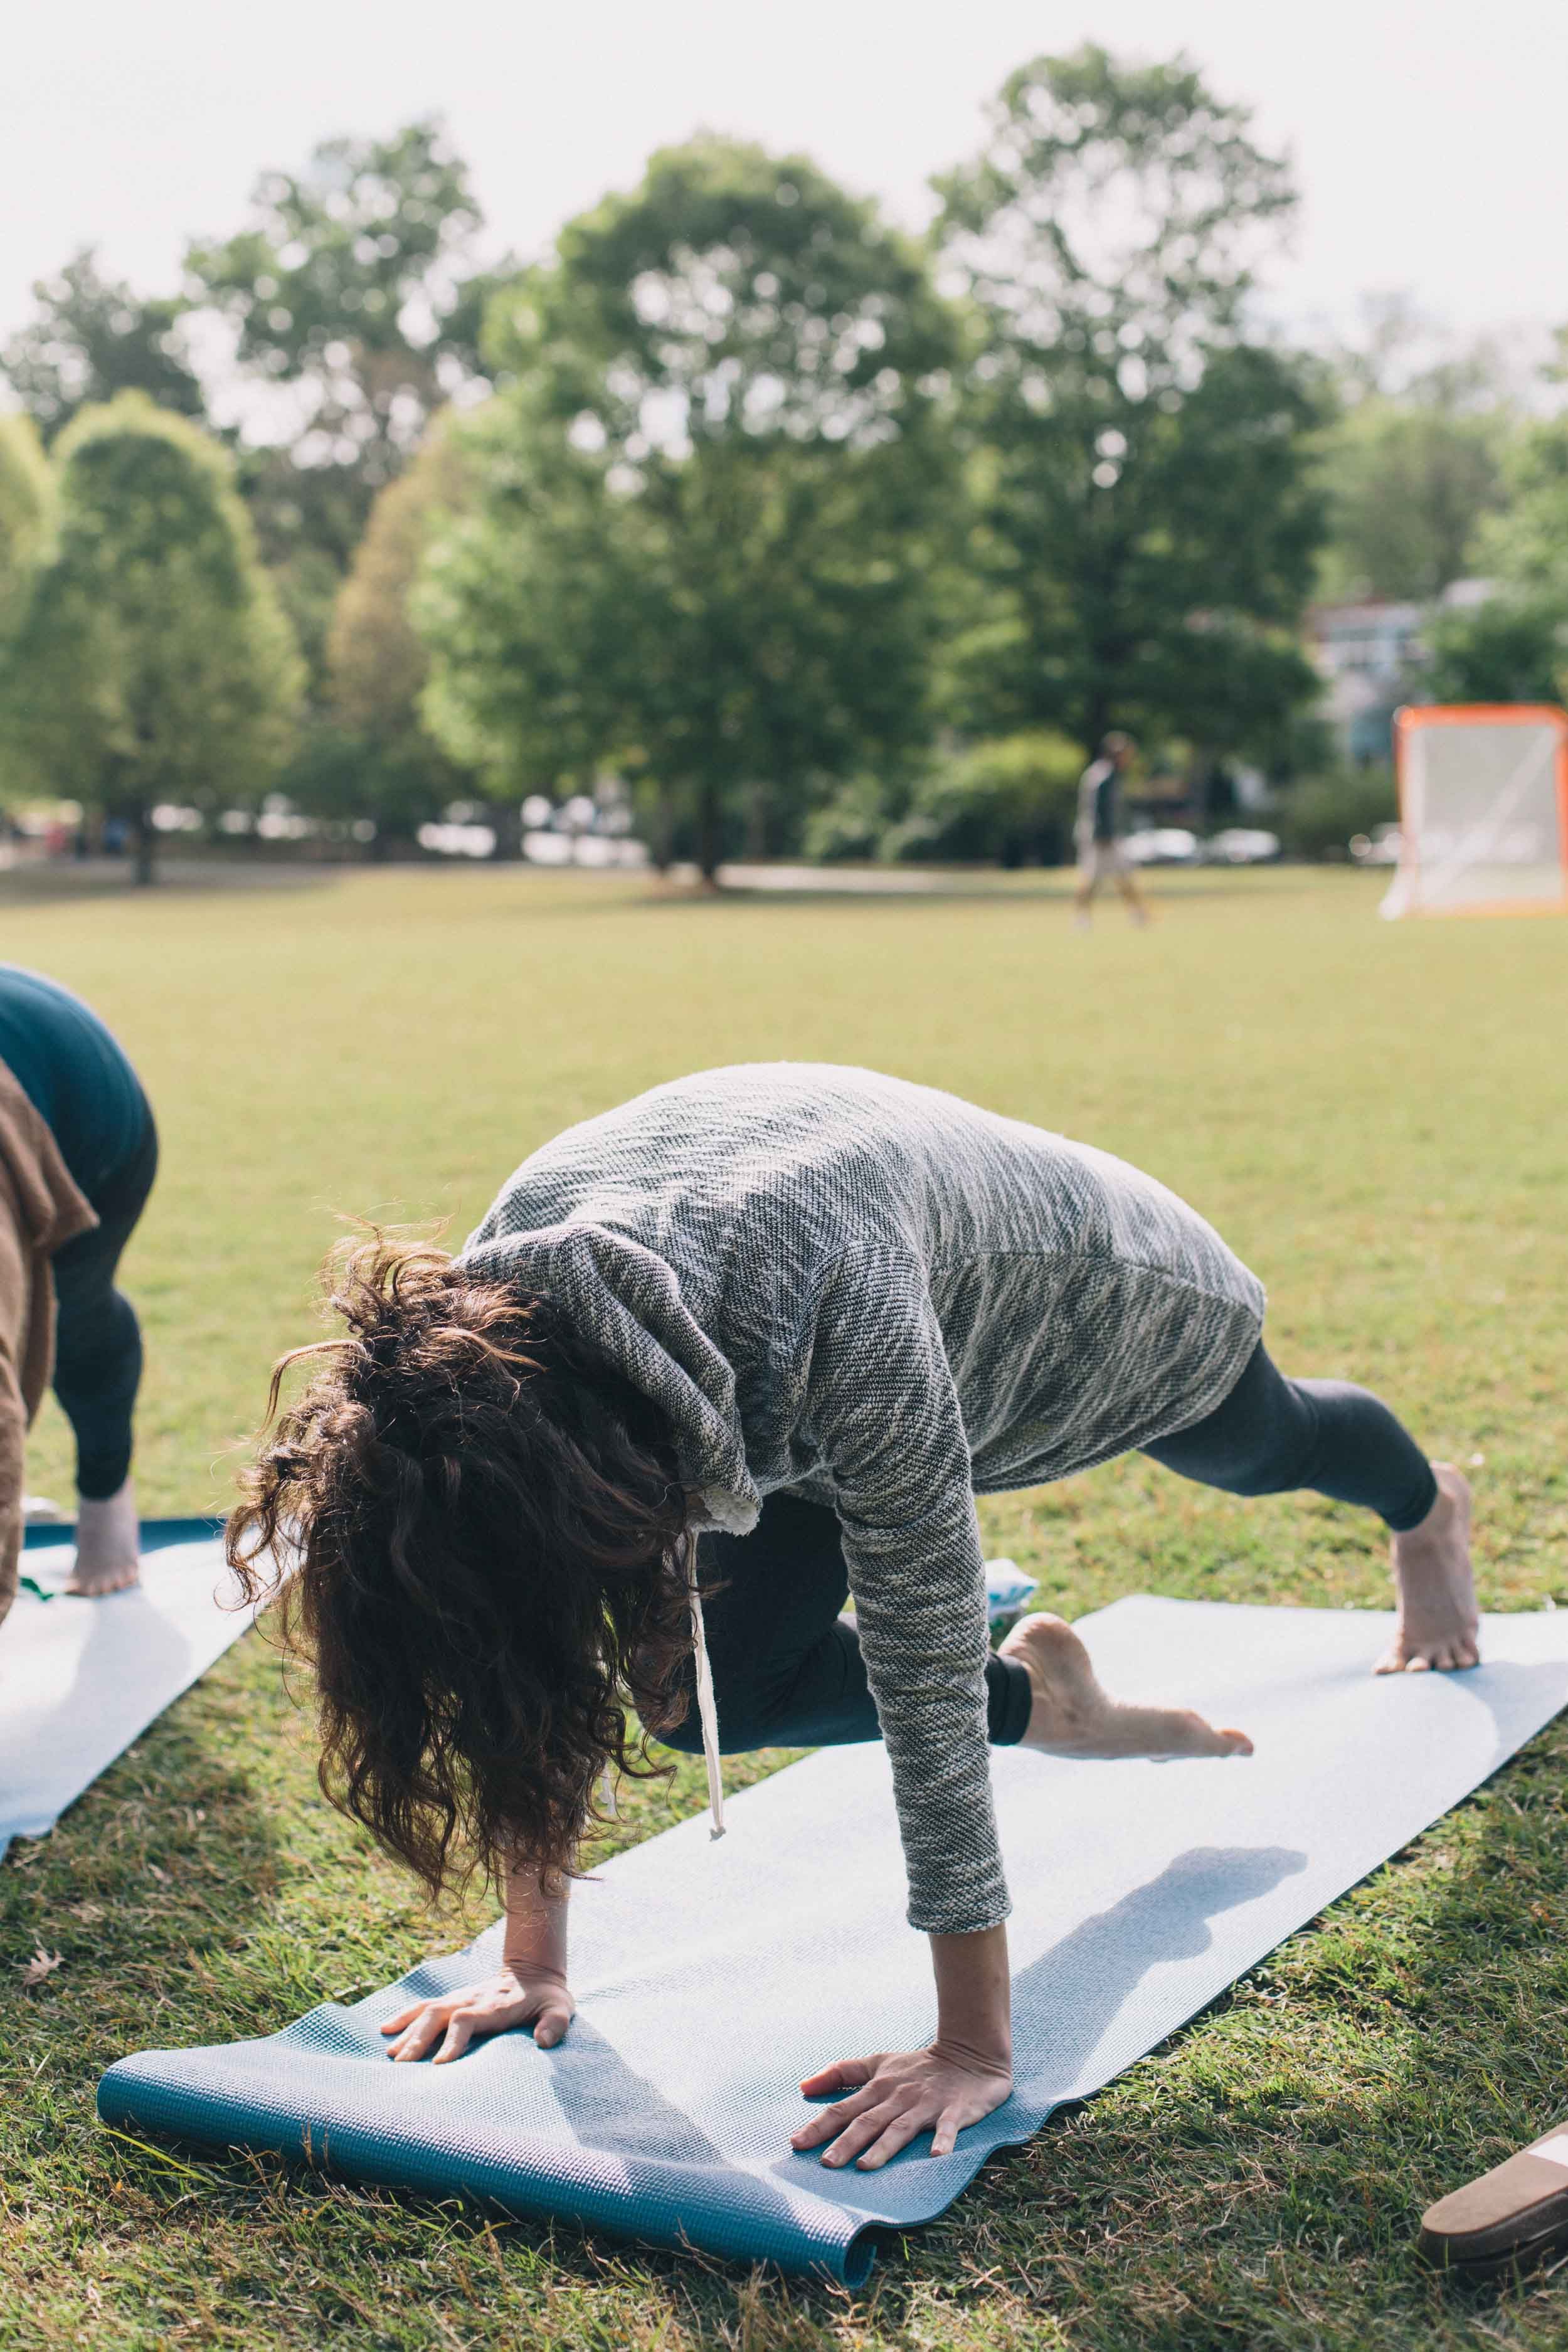 jimmy-rowalt-atlanta-event-photography-yoga-015.jpg